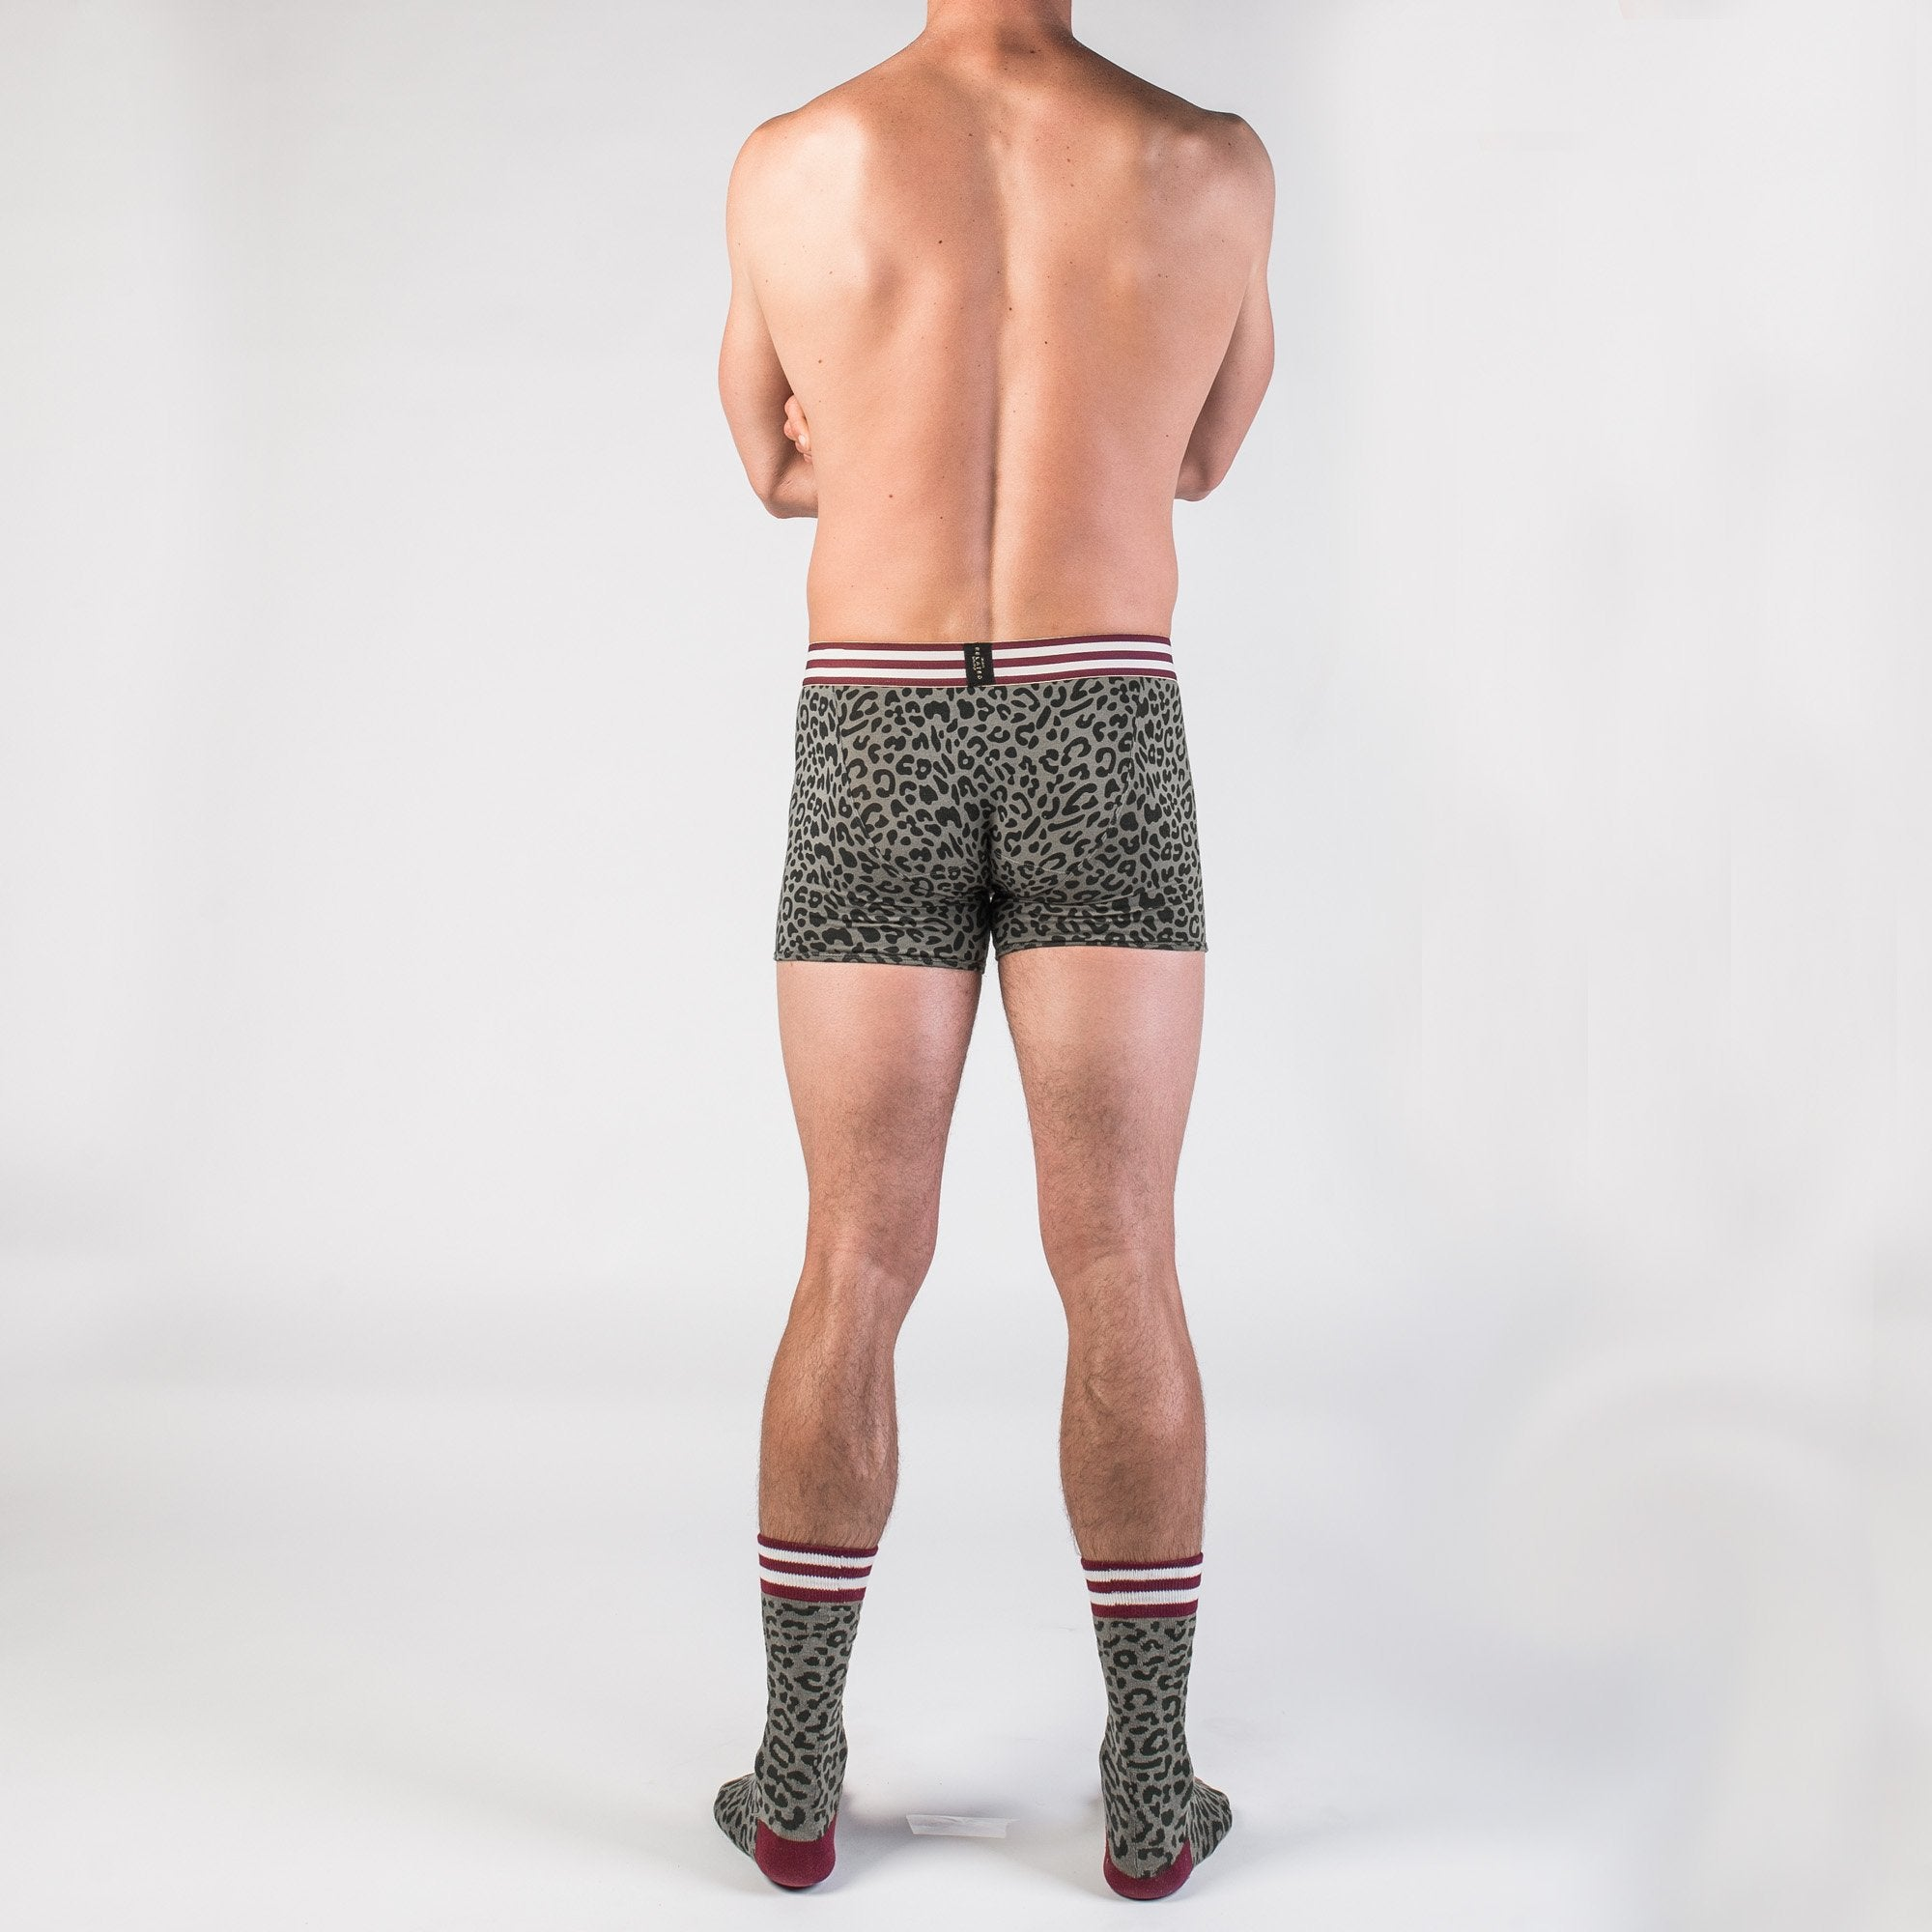 BOXER BRIEF + CREW SOCK + NO-SHOW SOCK - The Cheetah